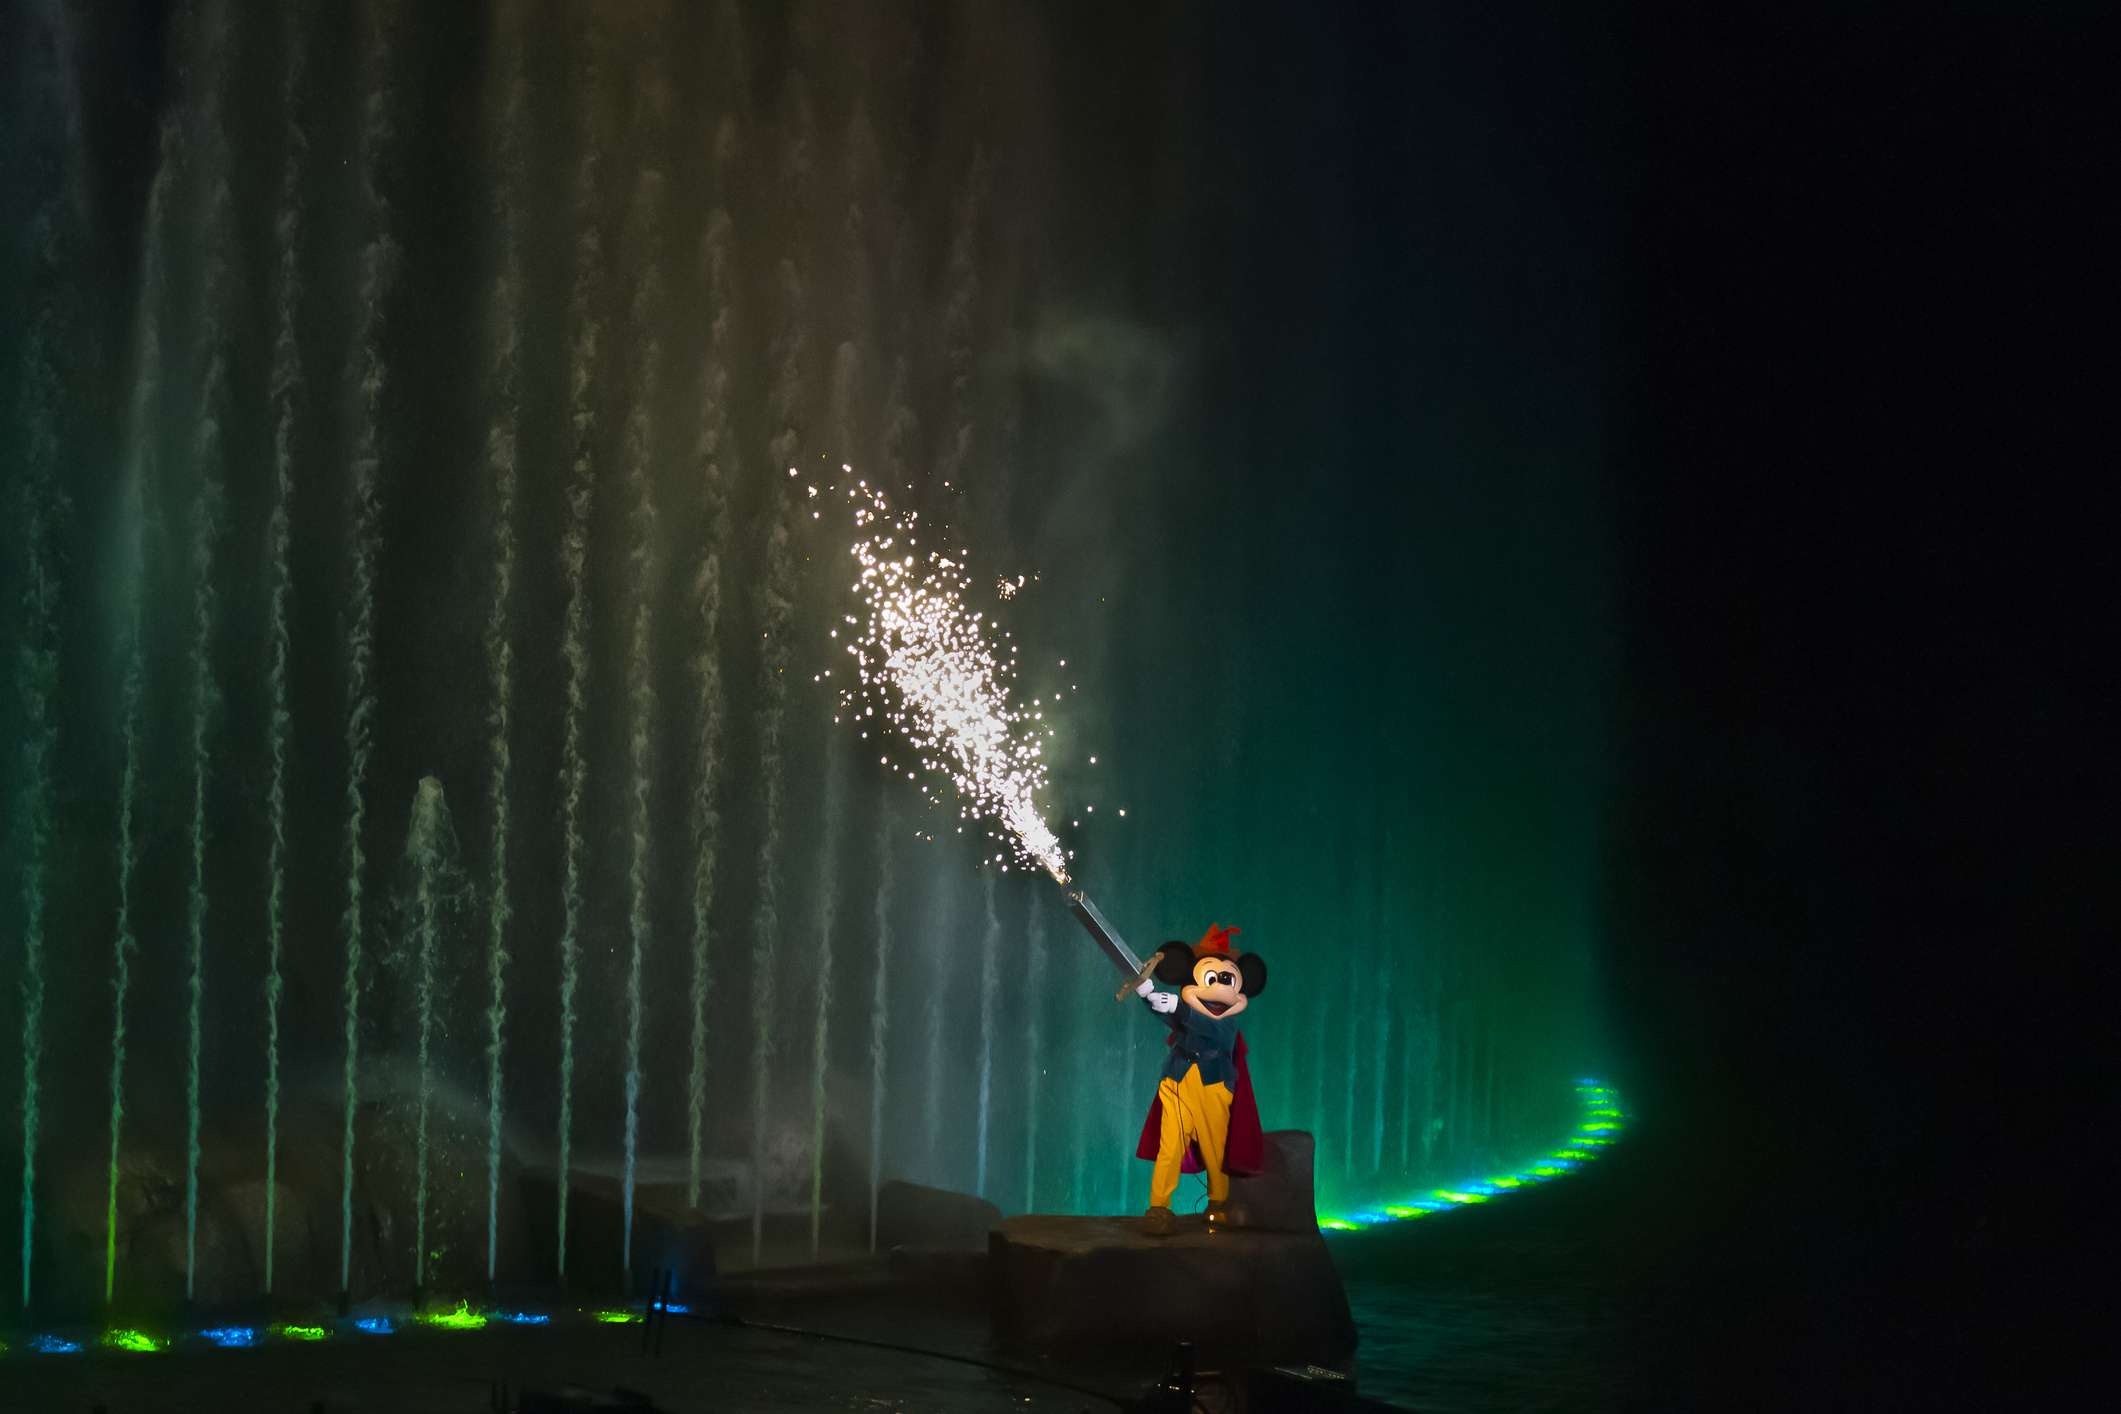 Fantasmic! with Mickey Mouse shooting fireworks